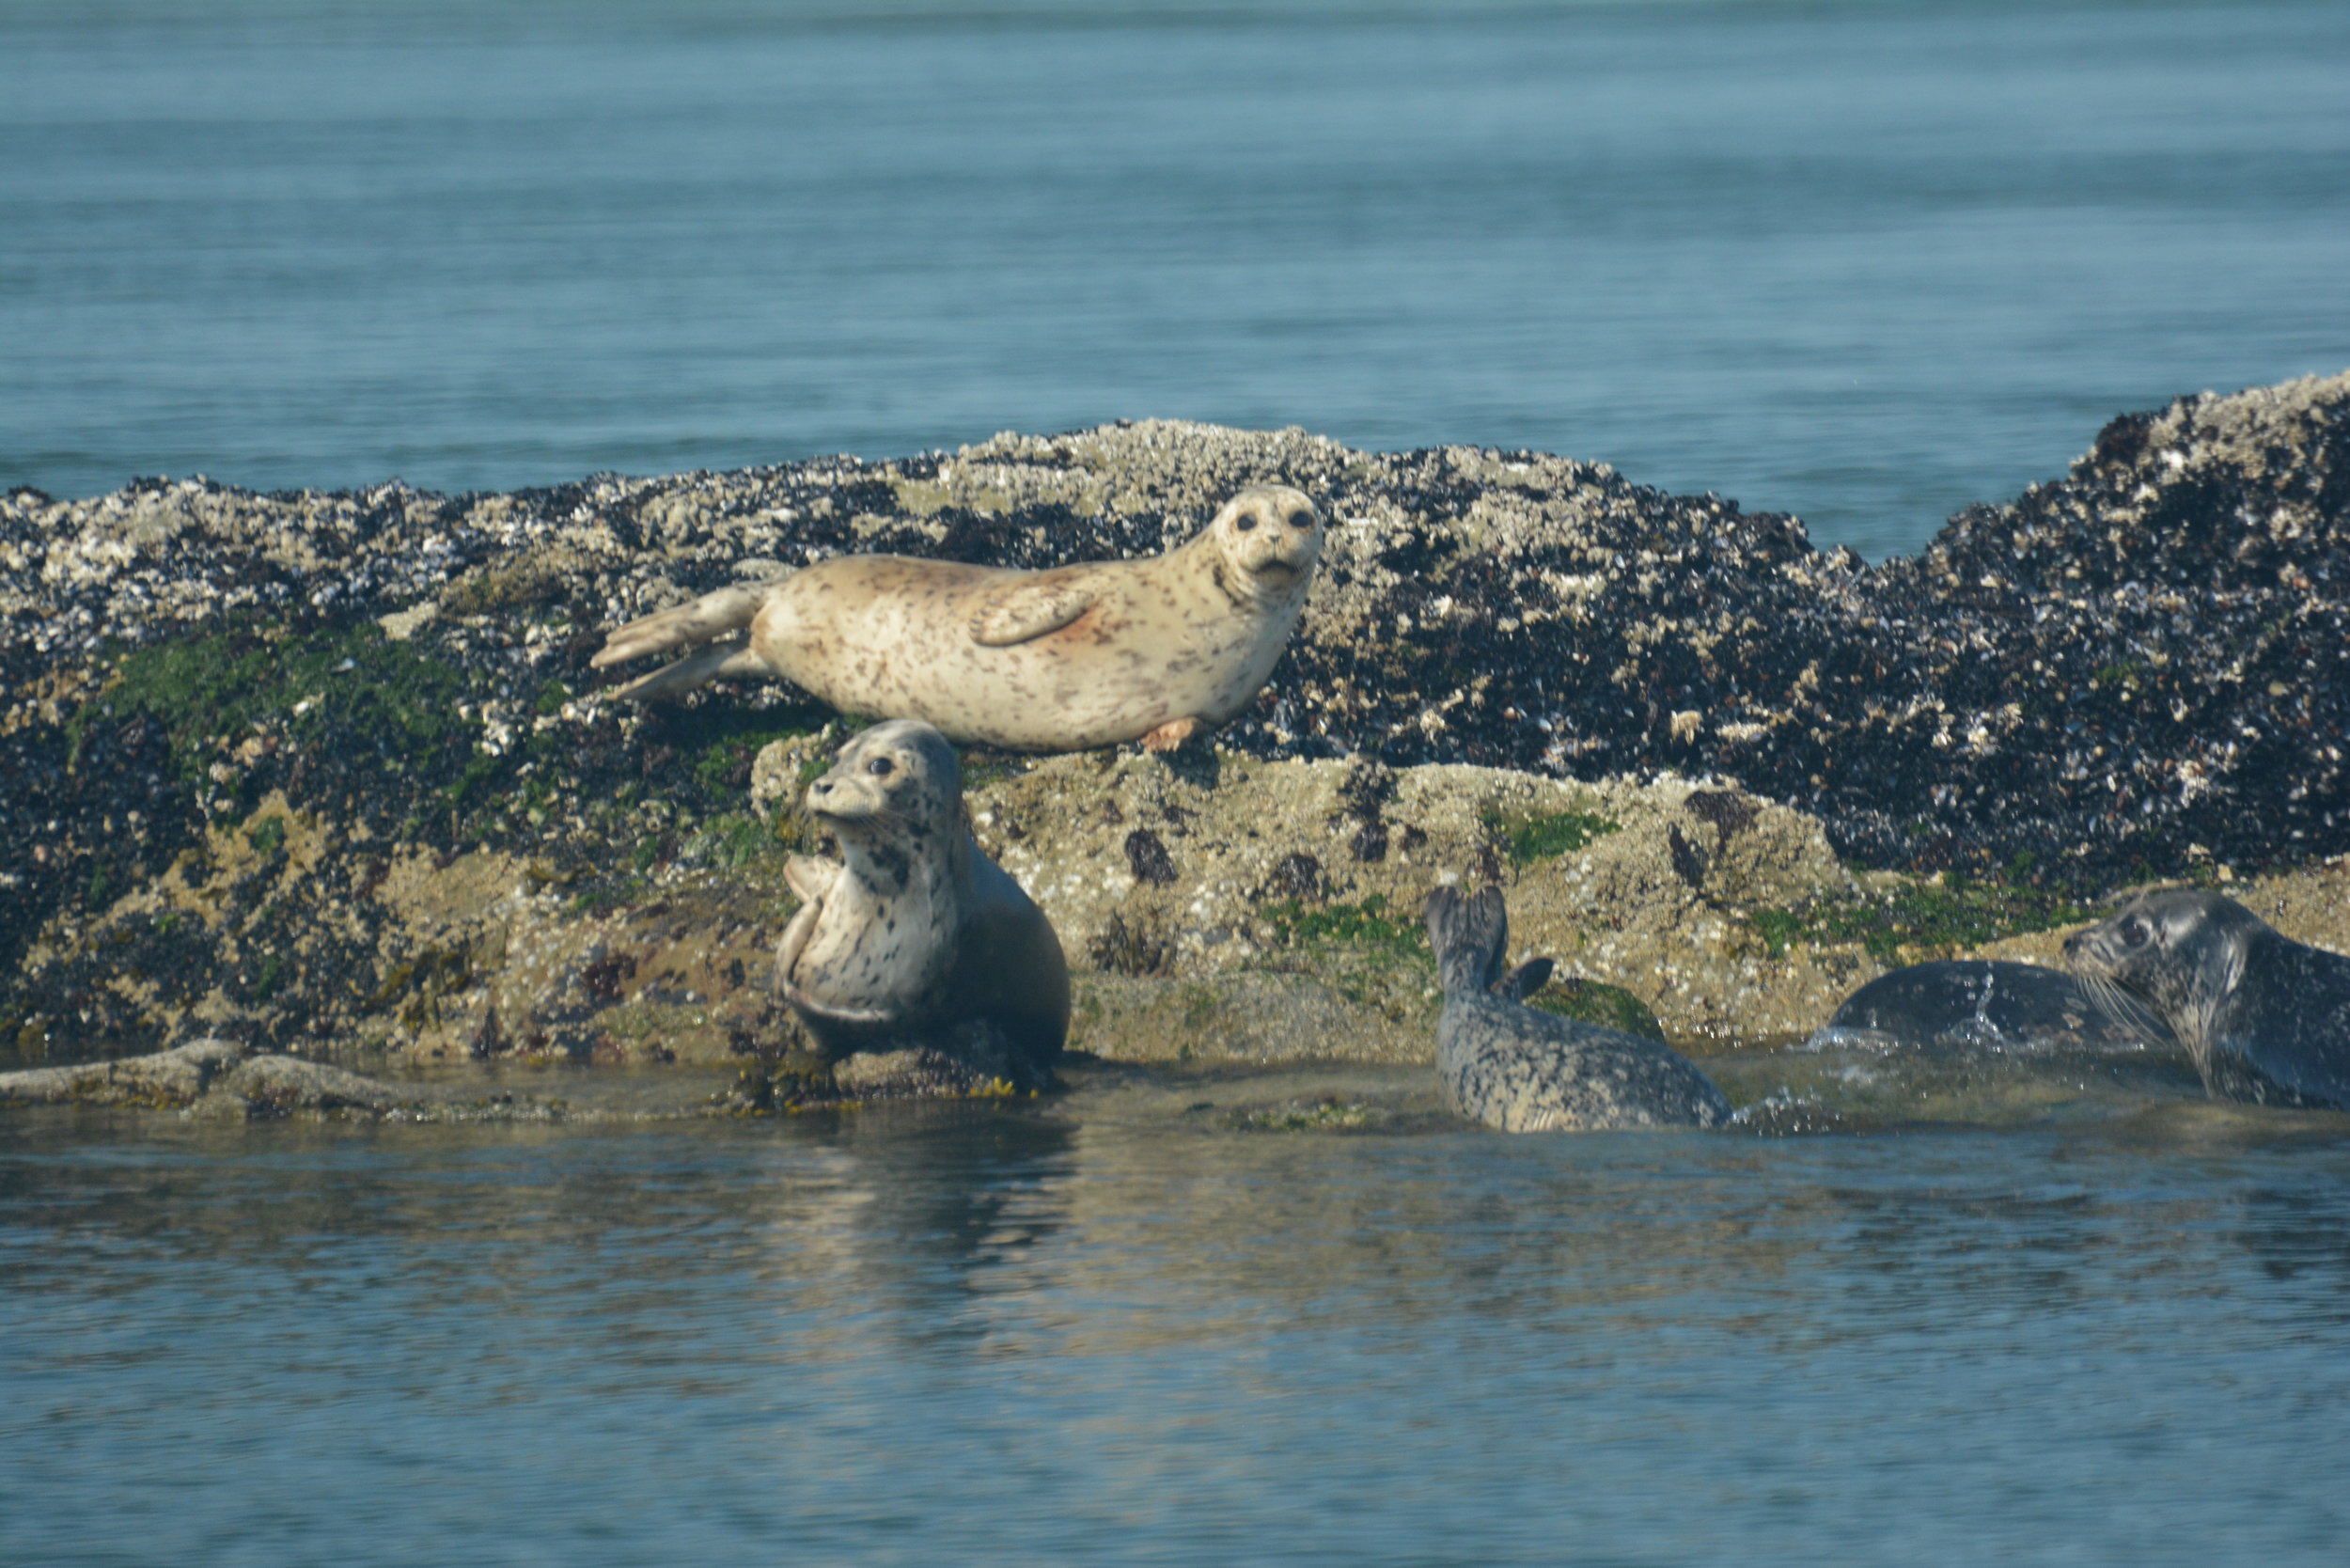 We watched a few harbour seals, and they watched us back! Photo by Alanna Vivanni